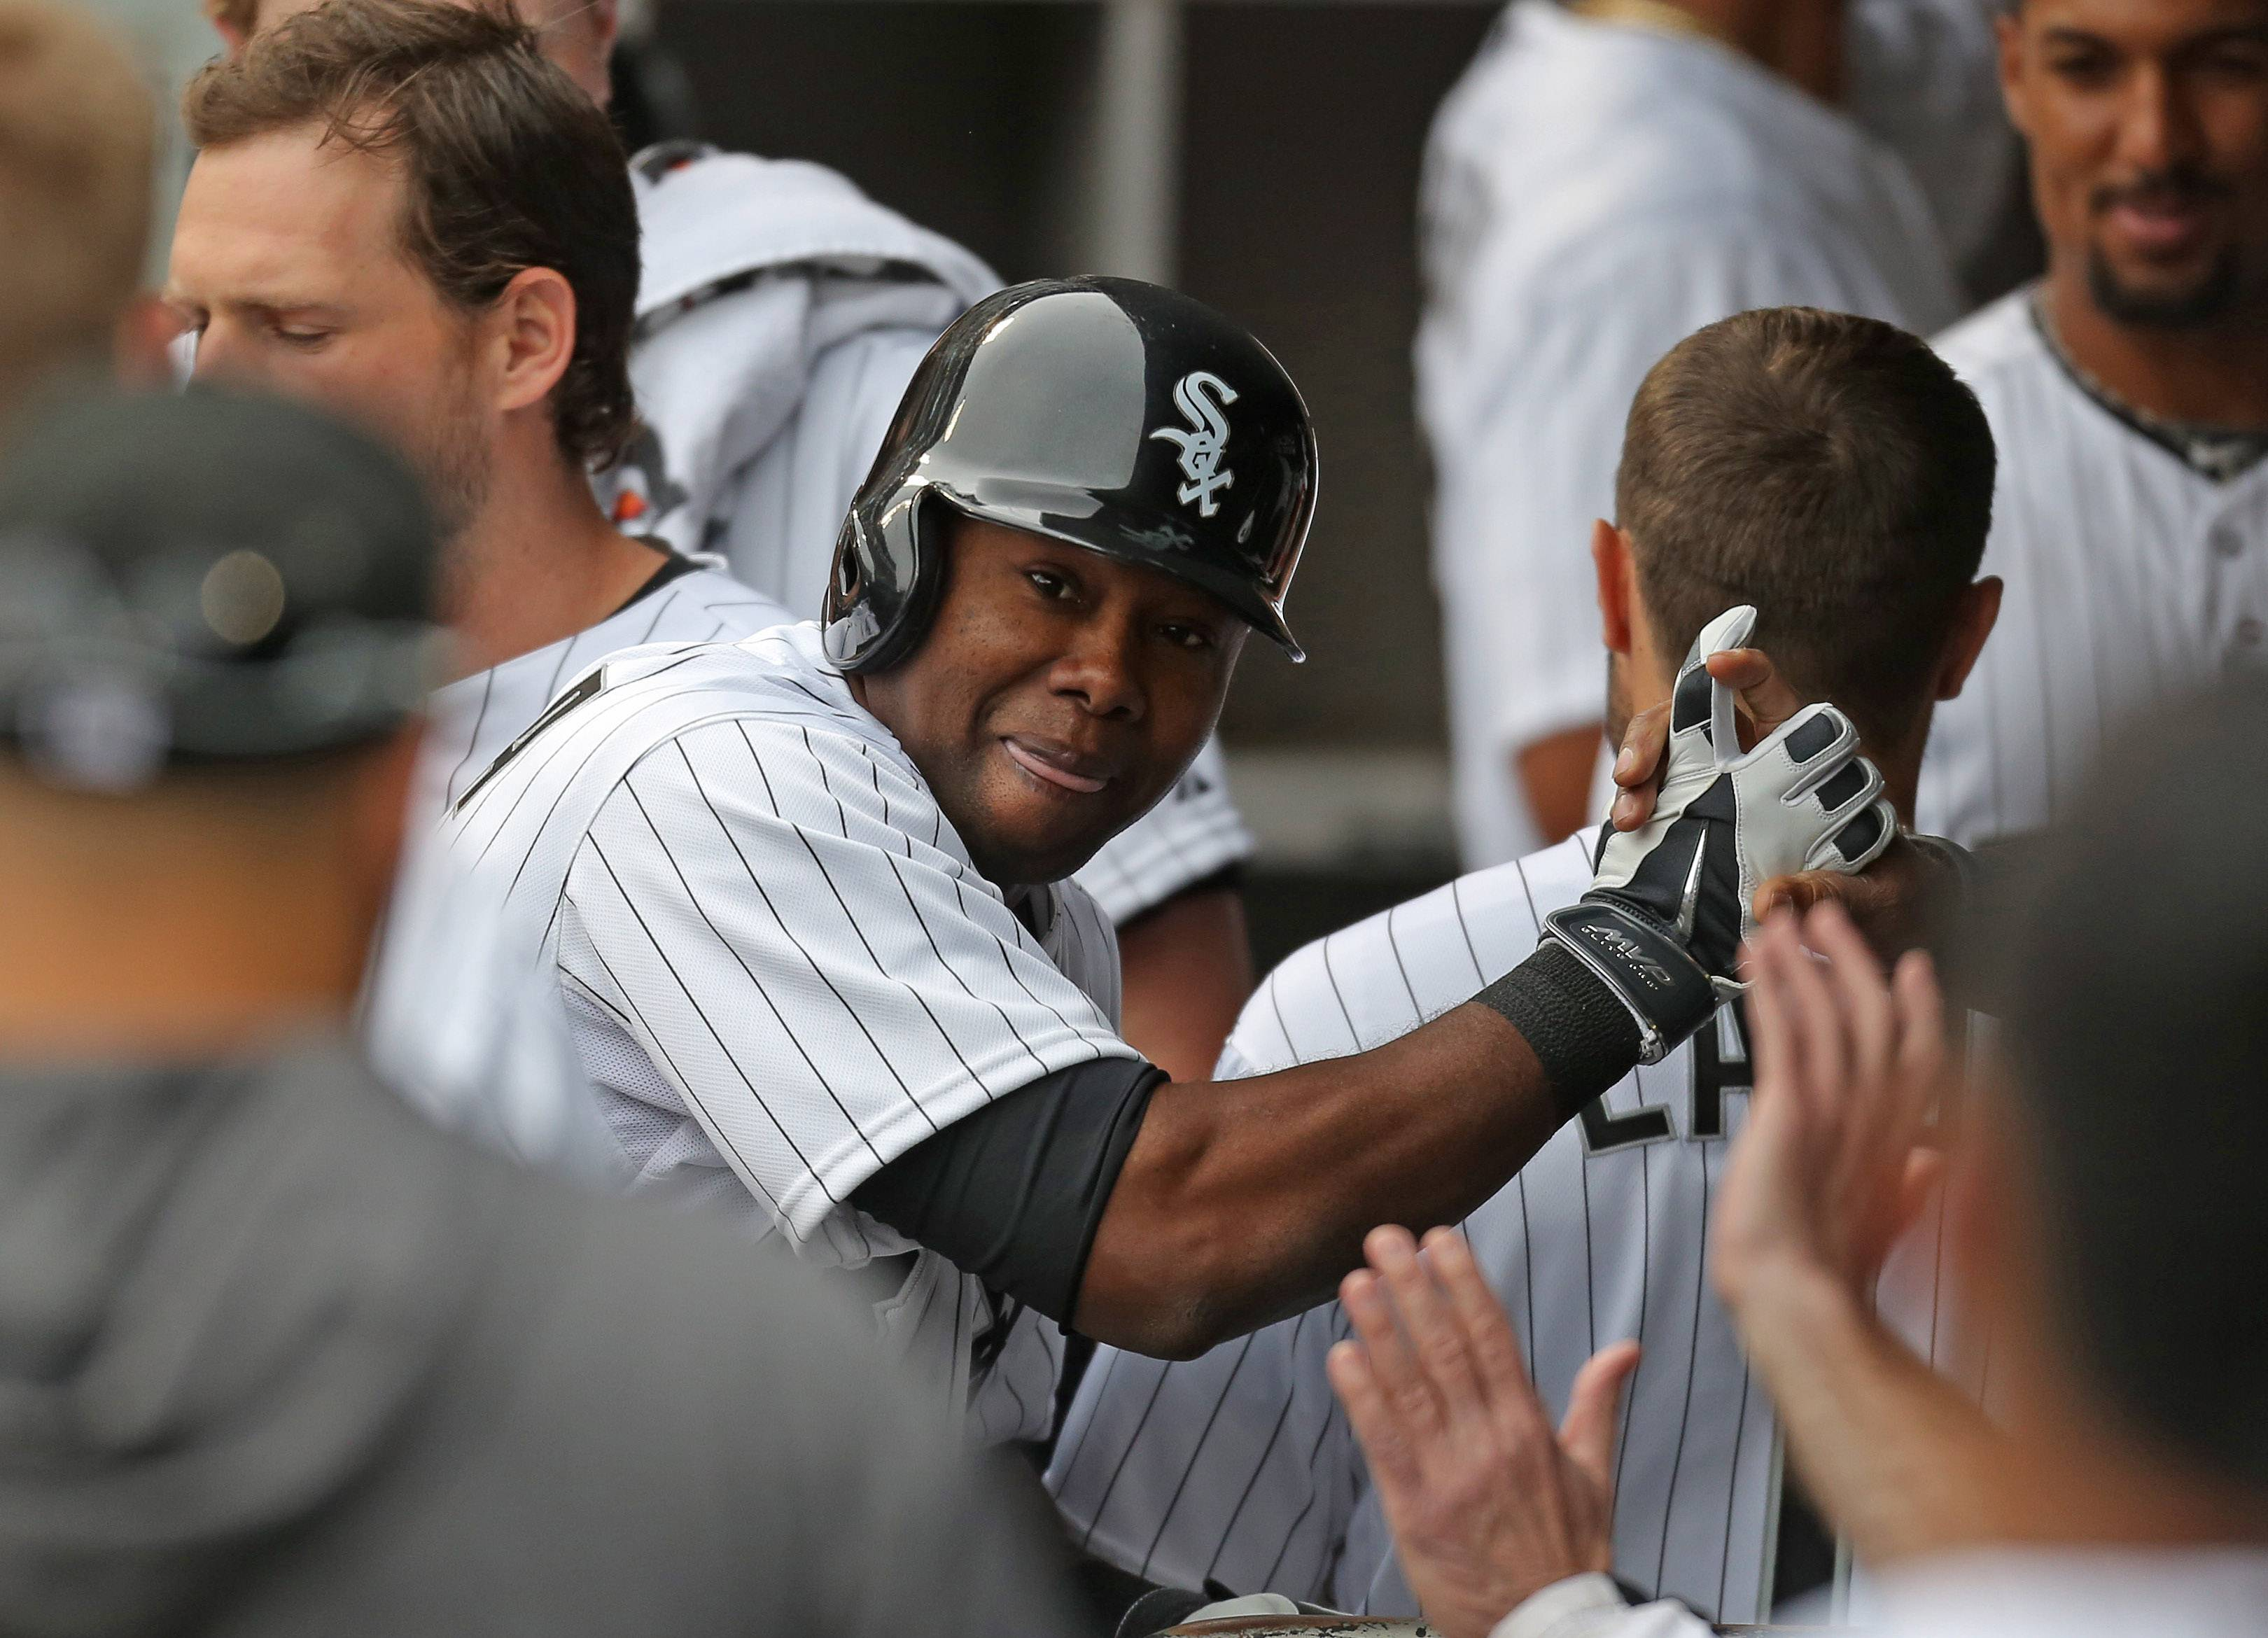 Chicago White Sox center fielder Alejandro De Aza high fives teammates on the bench after his second homer of the game.